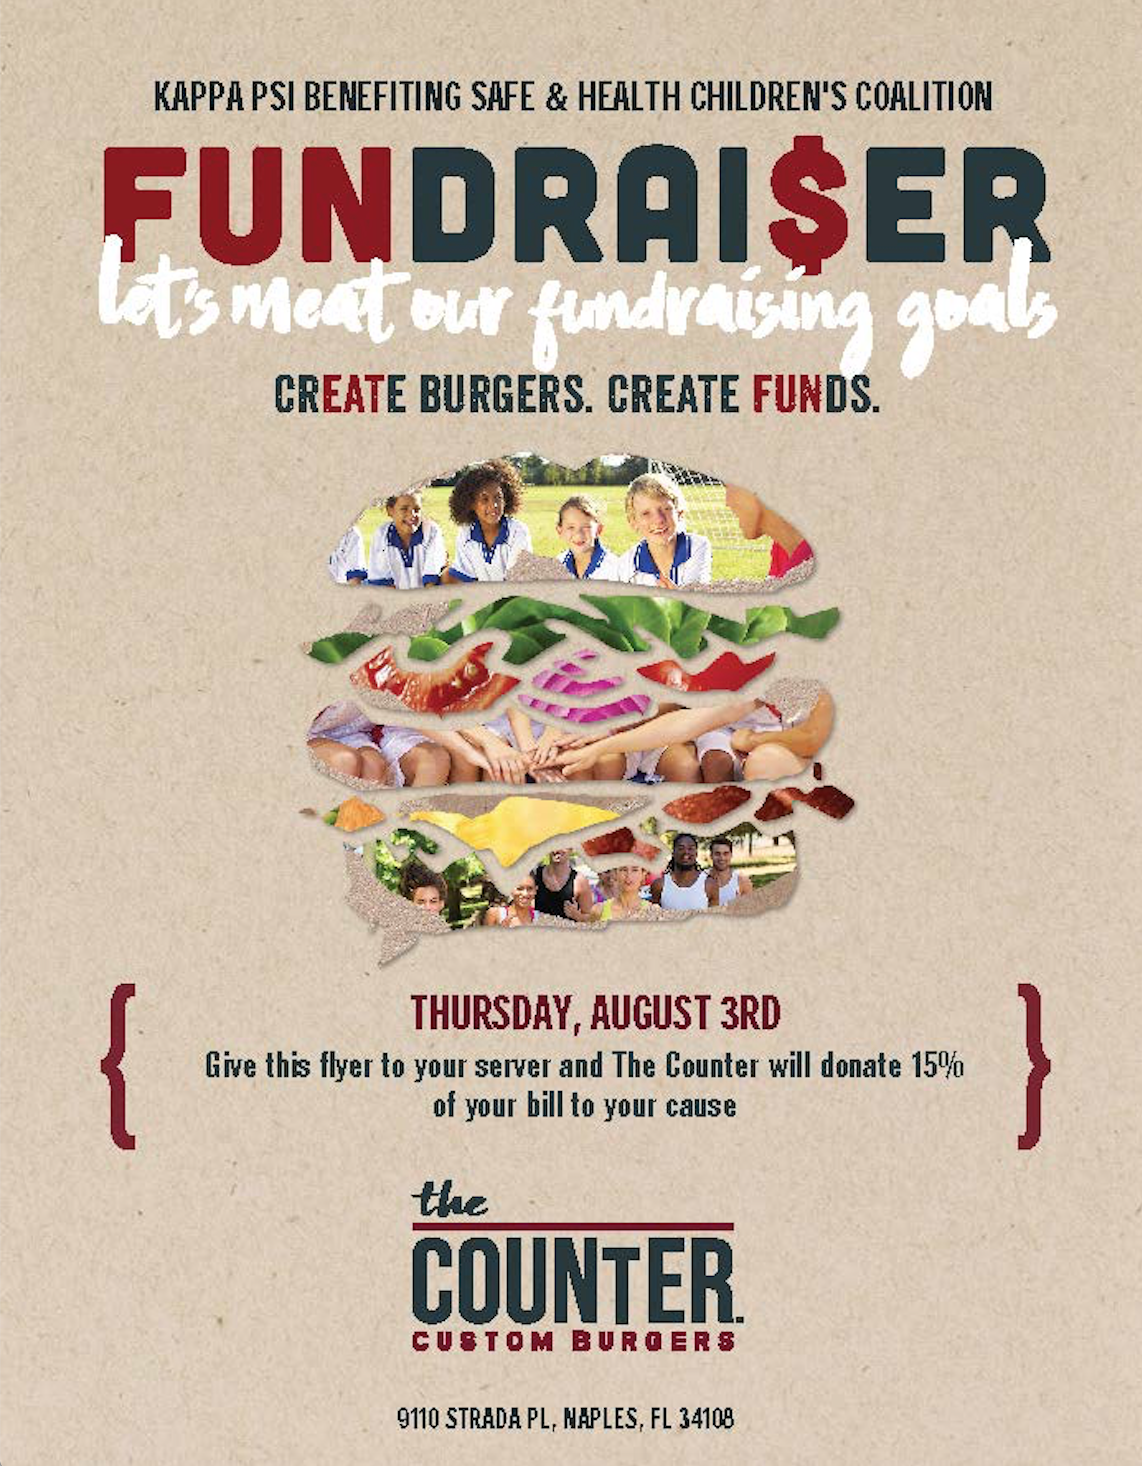 Lunch Dinner Plans On Thursday August 3rd And Friday